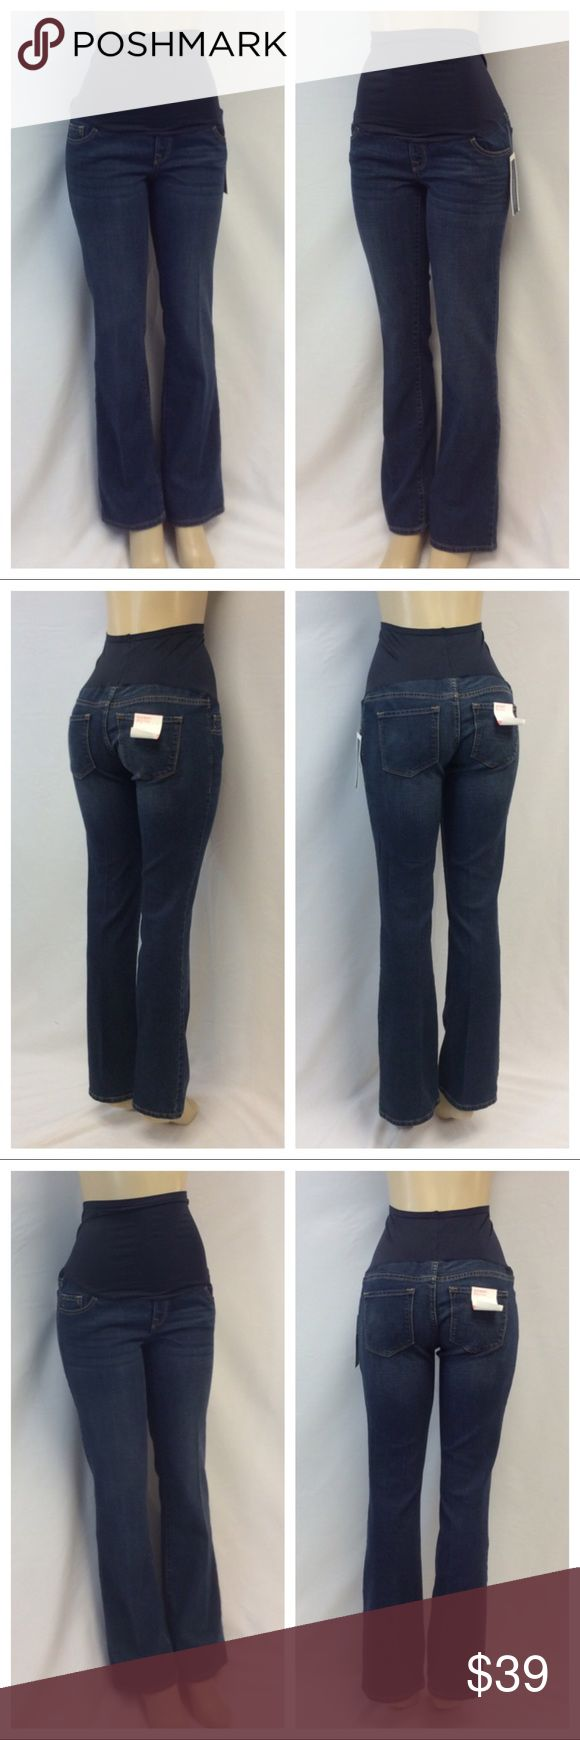 """OLD NAVY Maternity Jeans NWT OLD NAVY Maternity Jeans NWT, Size 6, 86% cotton, 13% polyester, 1% spandex, machine washable. Approximate measurements are 15"""" waist laying flat, 46"""" waist to hem, 8"""" waist to crotch, 32"""" inseam. 0670 Old Navy Jeans"""